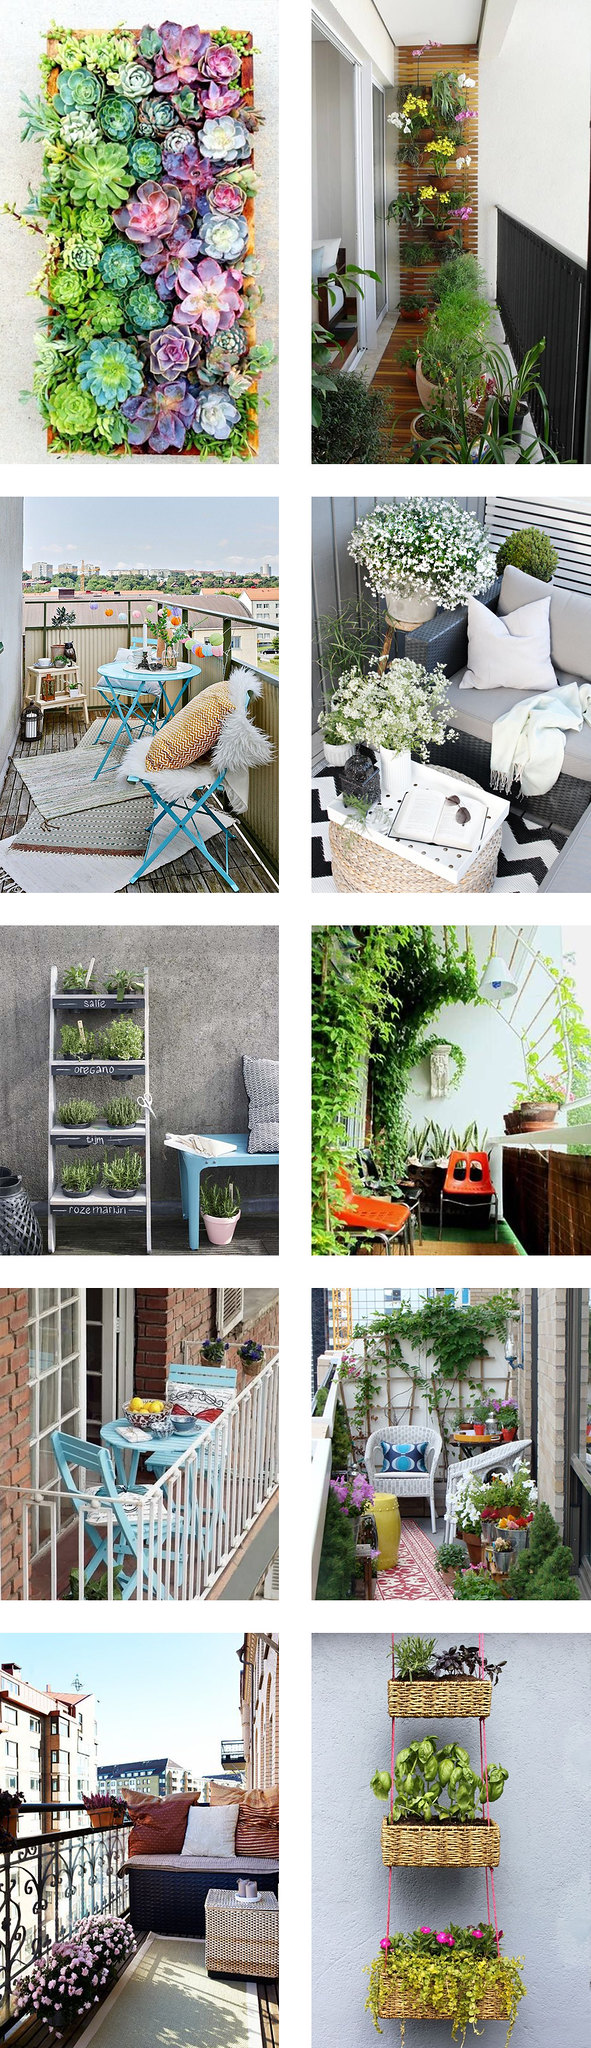 Monday inspirations balcony